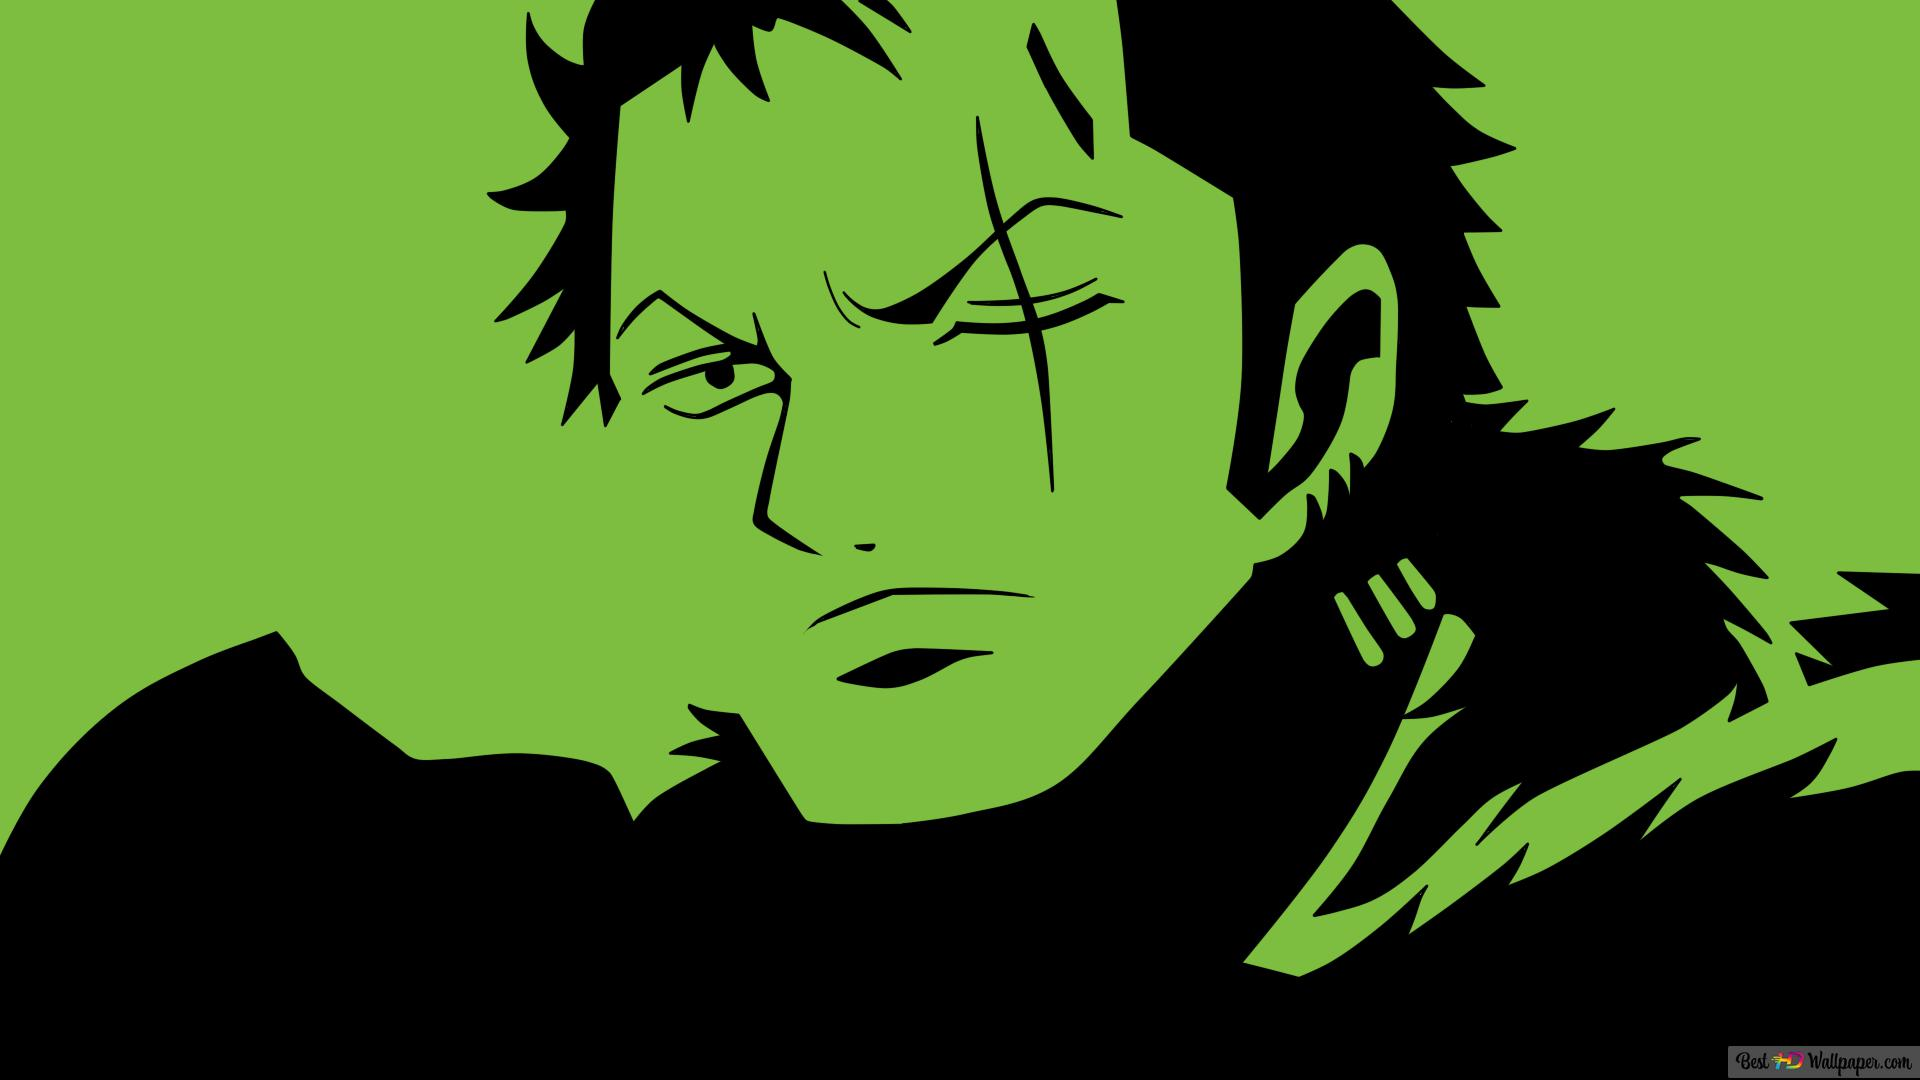 one piece roronoa zoro scar scan wallpaper 1920x1080 8548 48